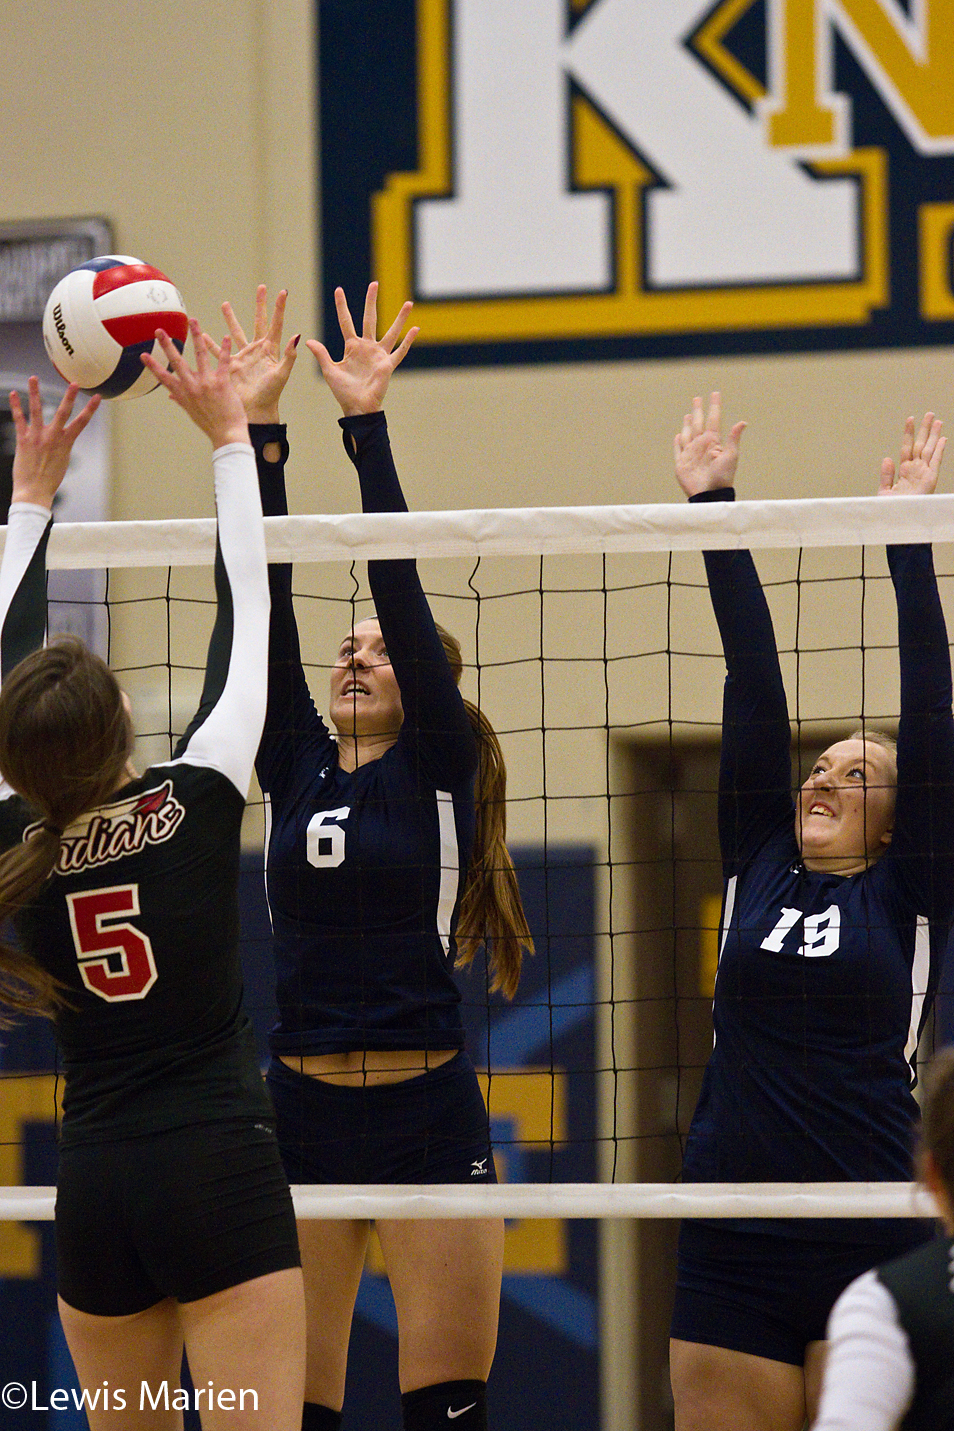 Knoxville's Chloe Palmer (6) and Nicole Lehman (19)defend a shot from Brimfield-Elmwood's Alannah Chaney (5) during the game Sept. 28 at Knoxville High School in Knoxville, Ill. The Blue Bullets lost to the Indians in two sets, 25-15 and 25-22.